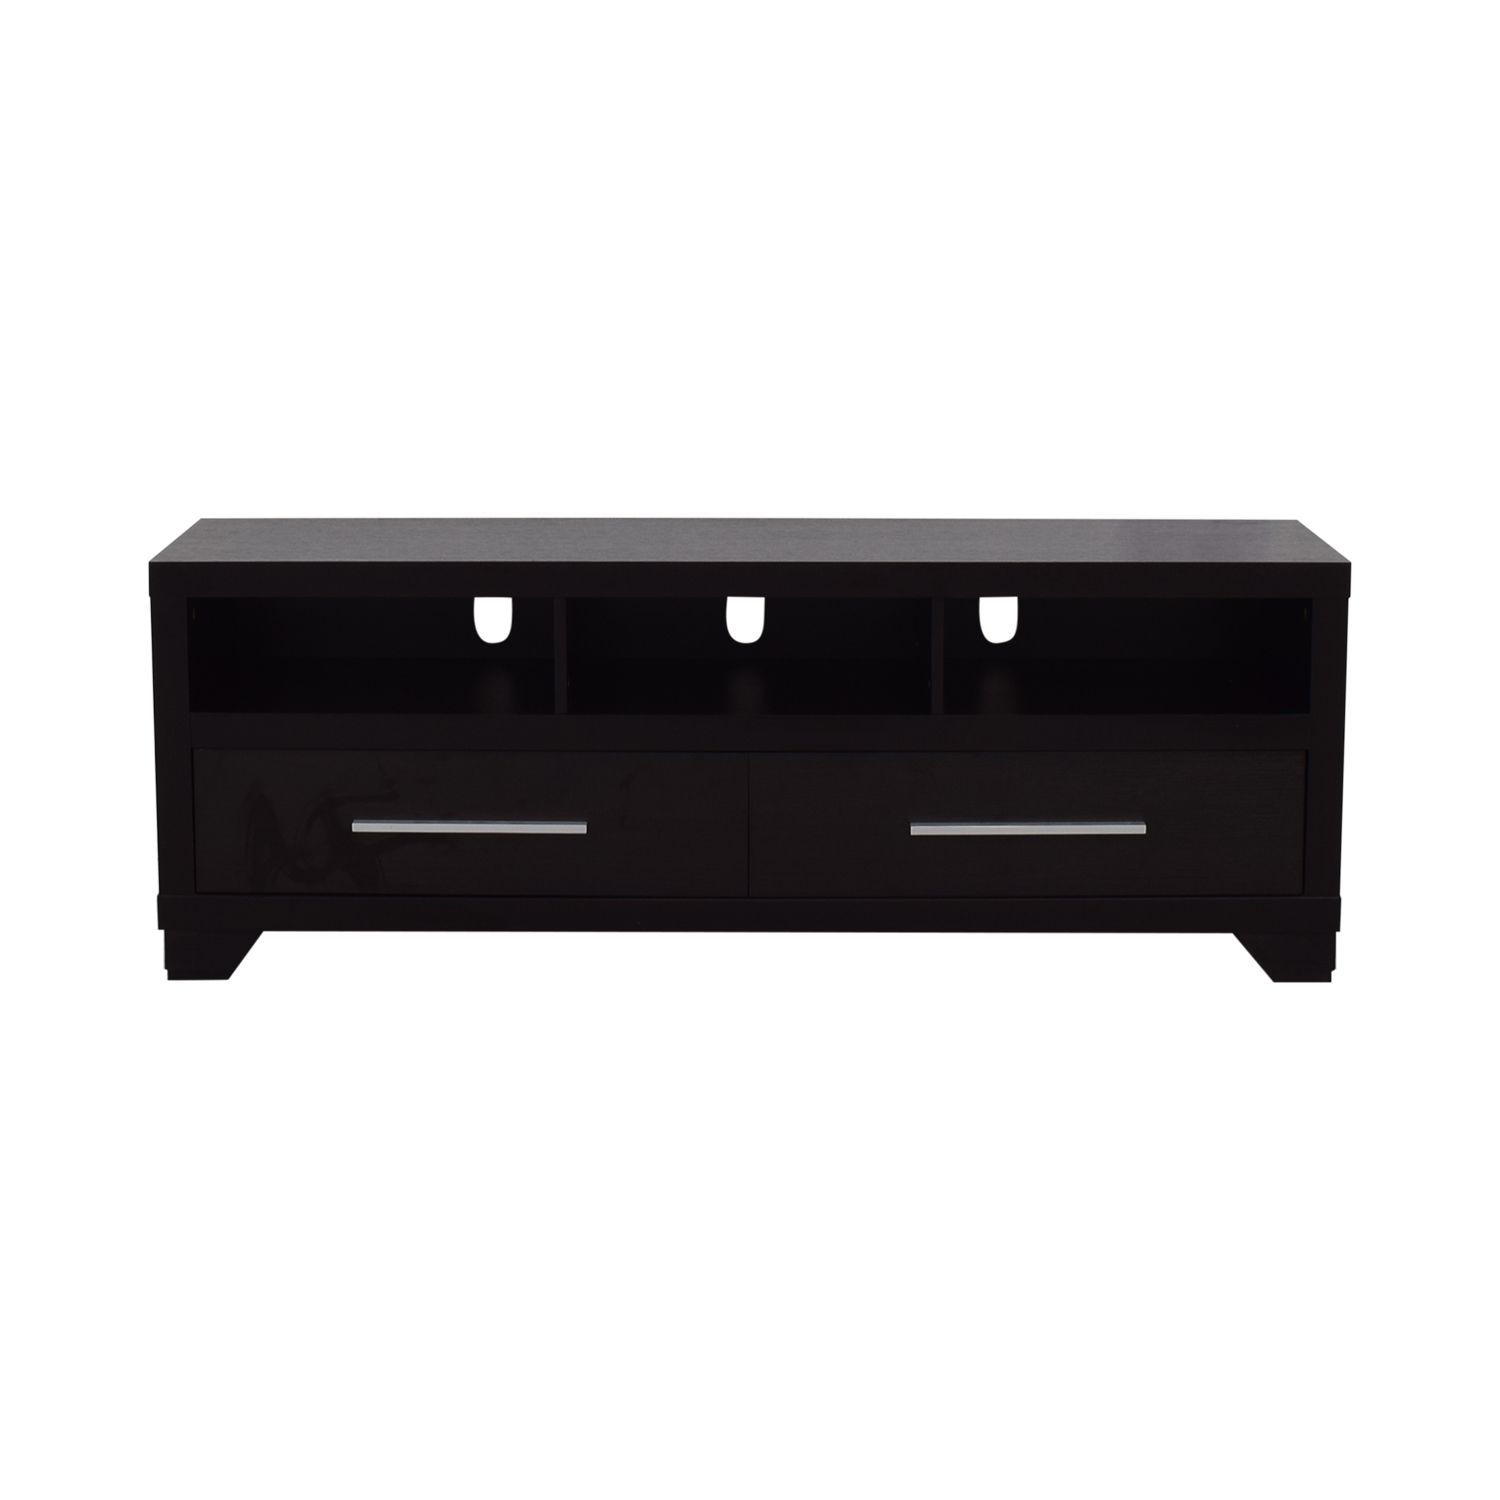 dCOR Design dCOR Design Melso TV Stand used